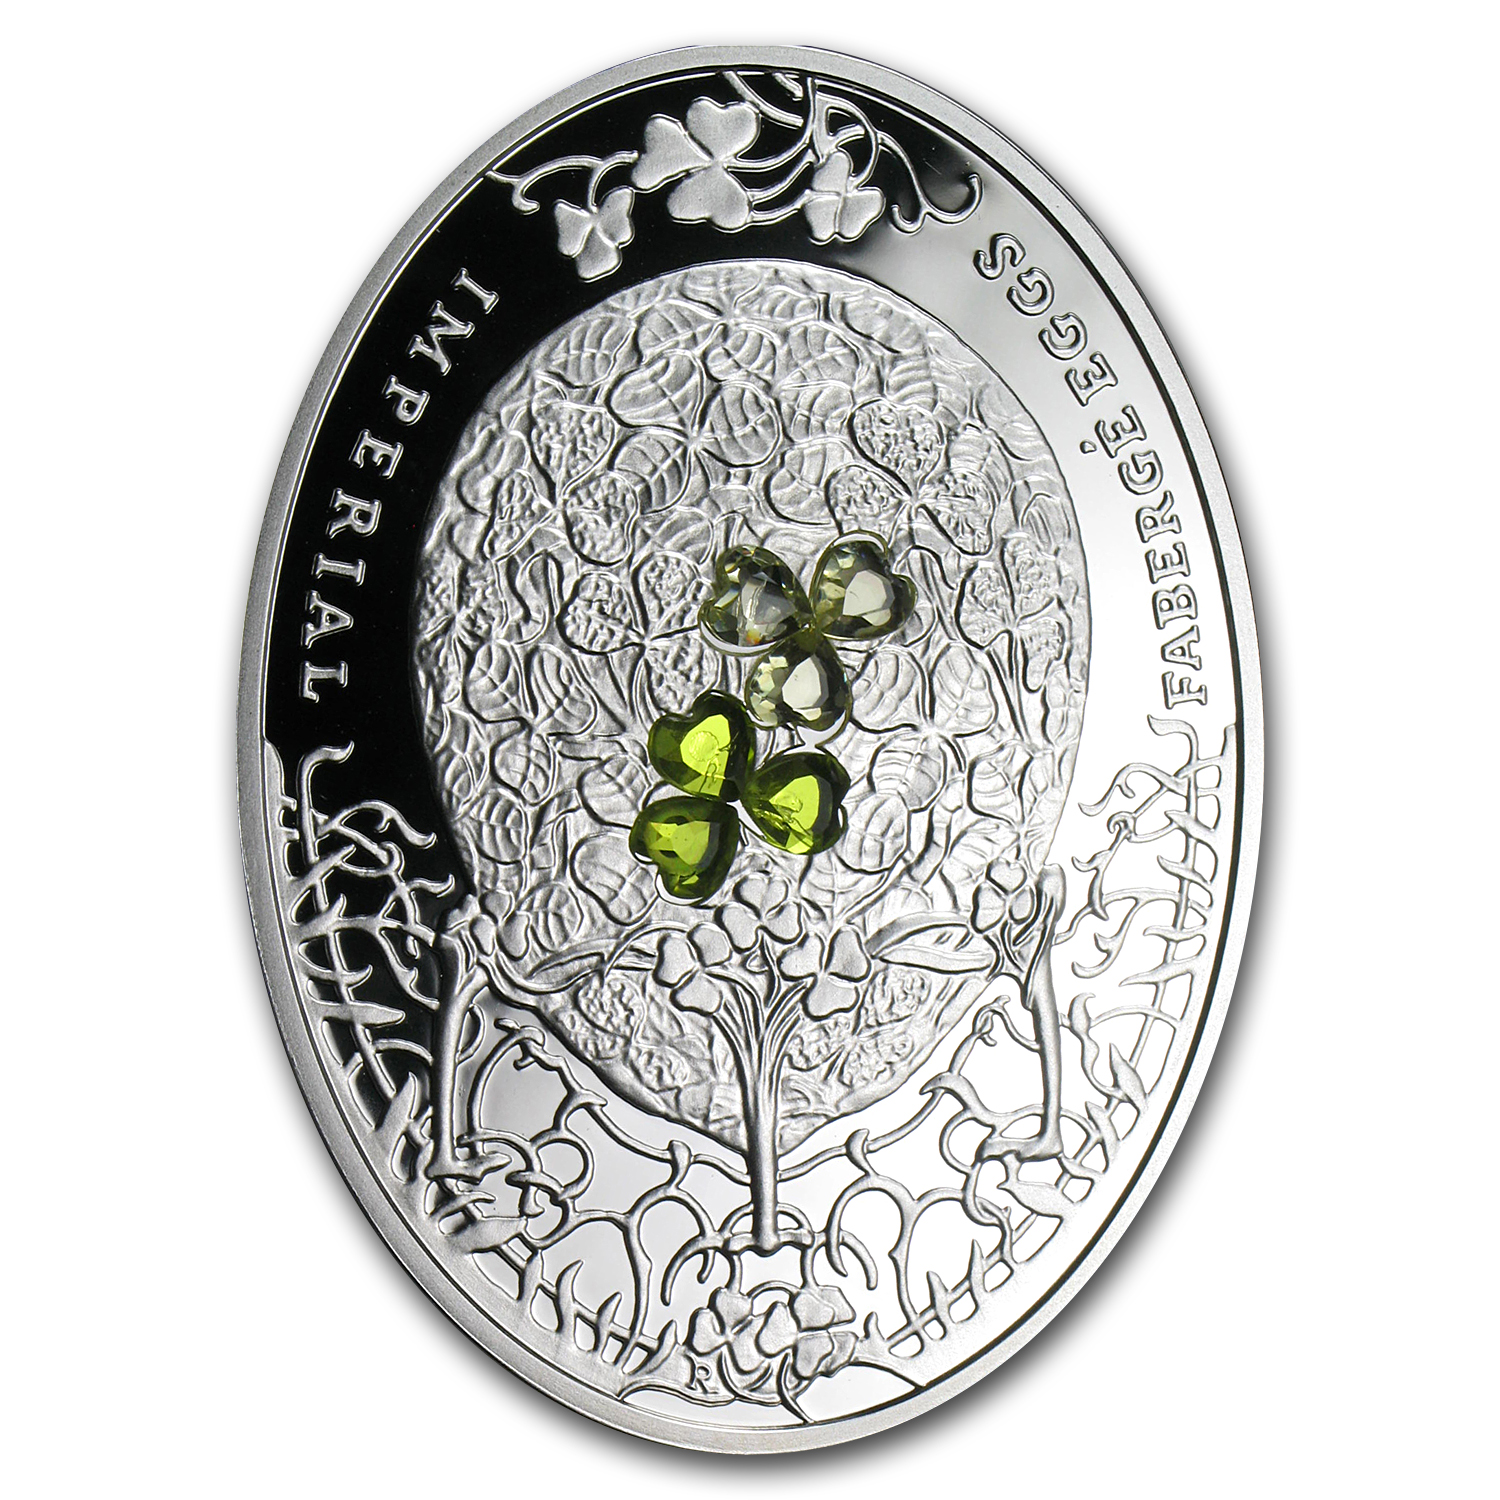 2010 Niue Proof Silver $2 Imperial Faberge Eggs Clover Leaf Egg